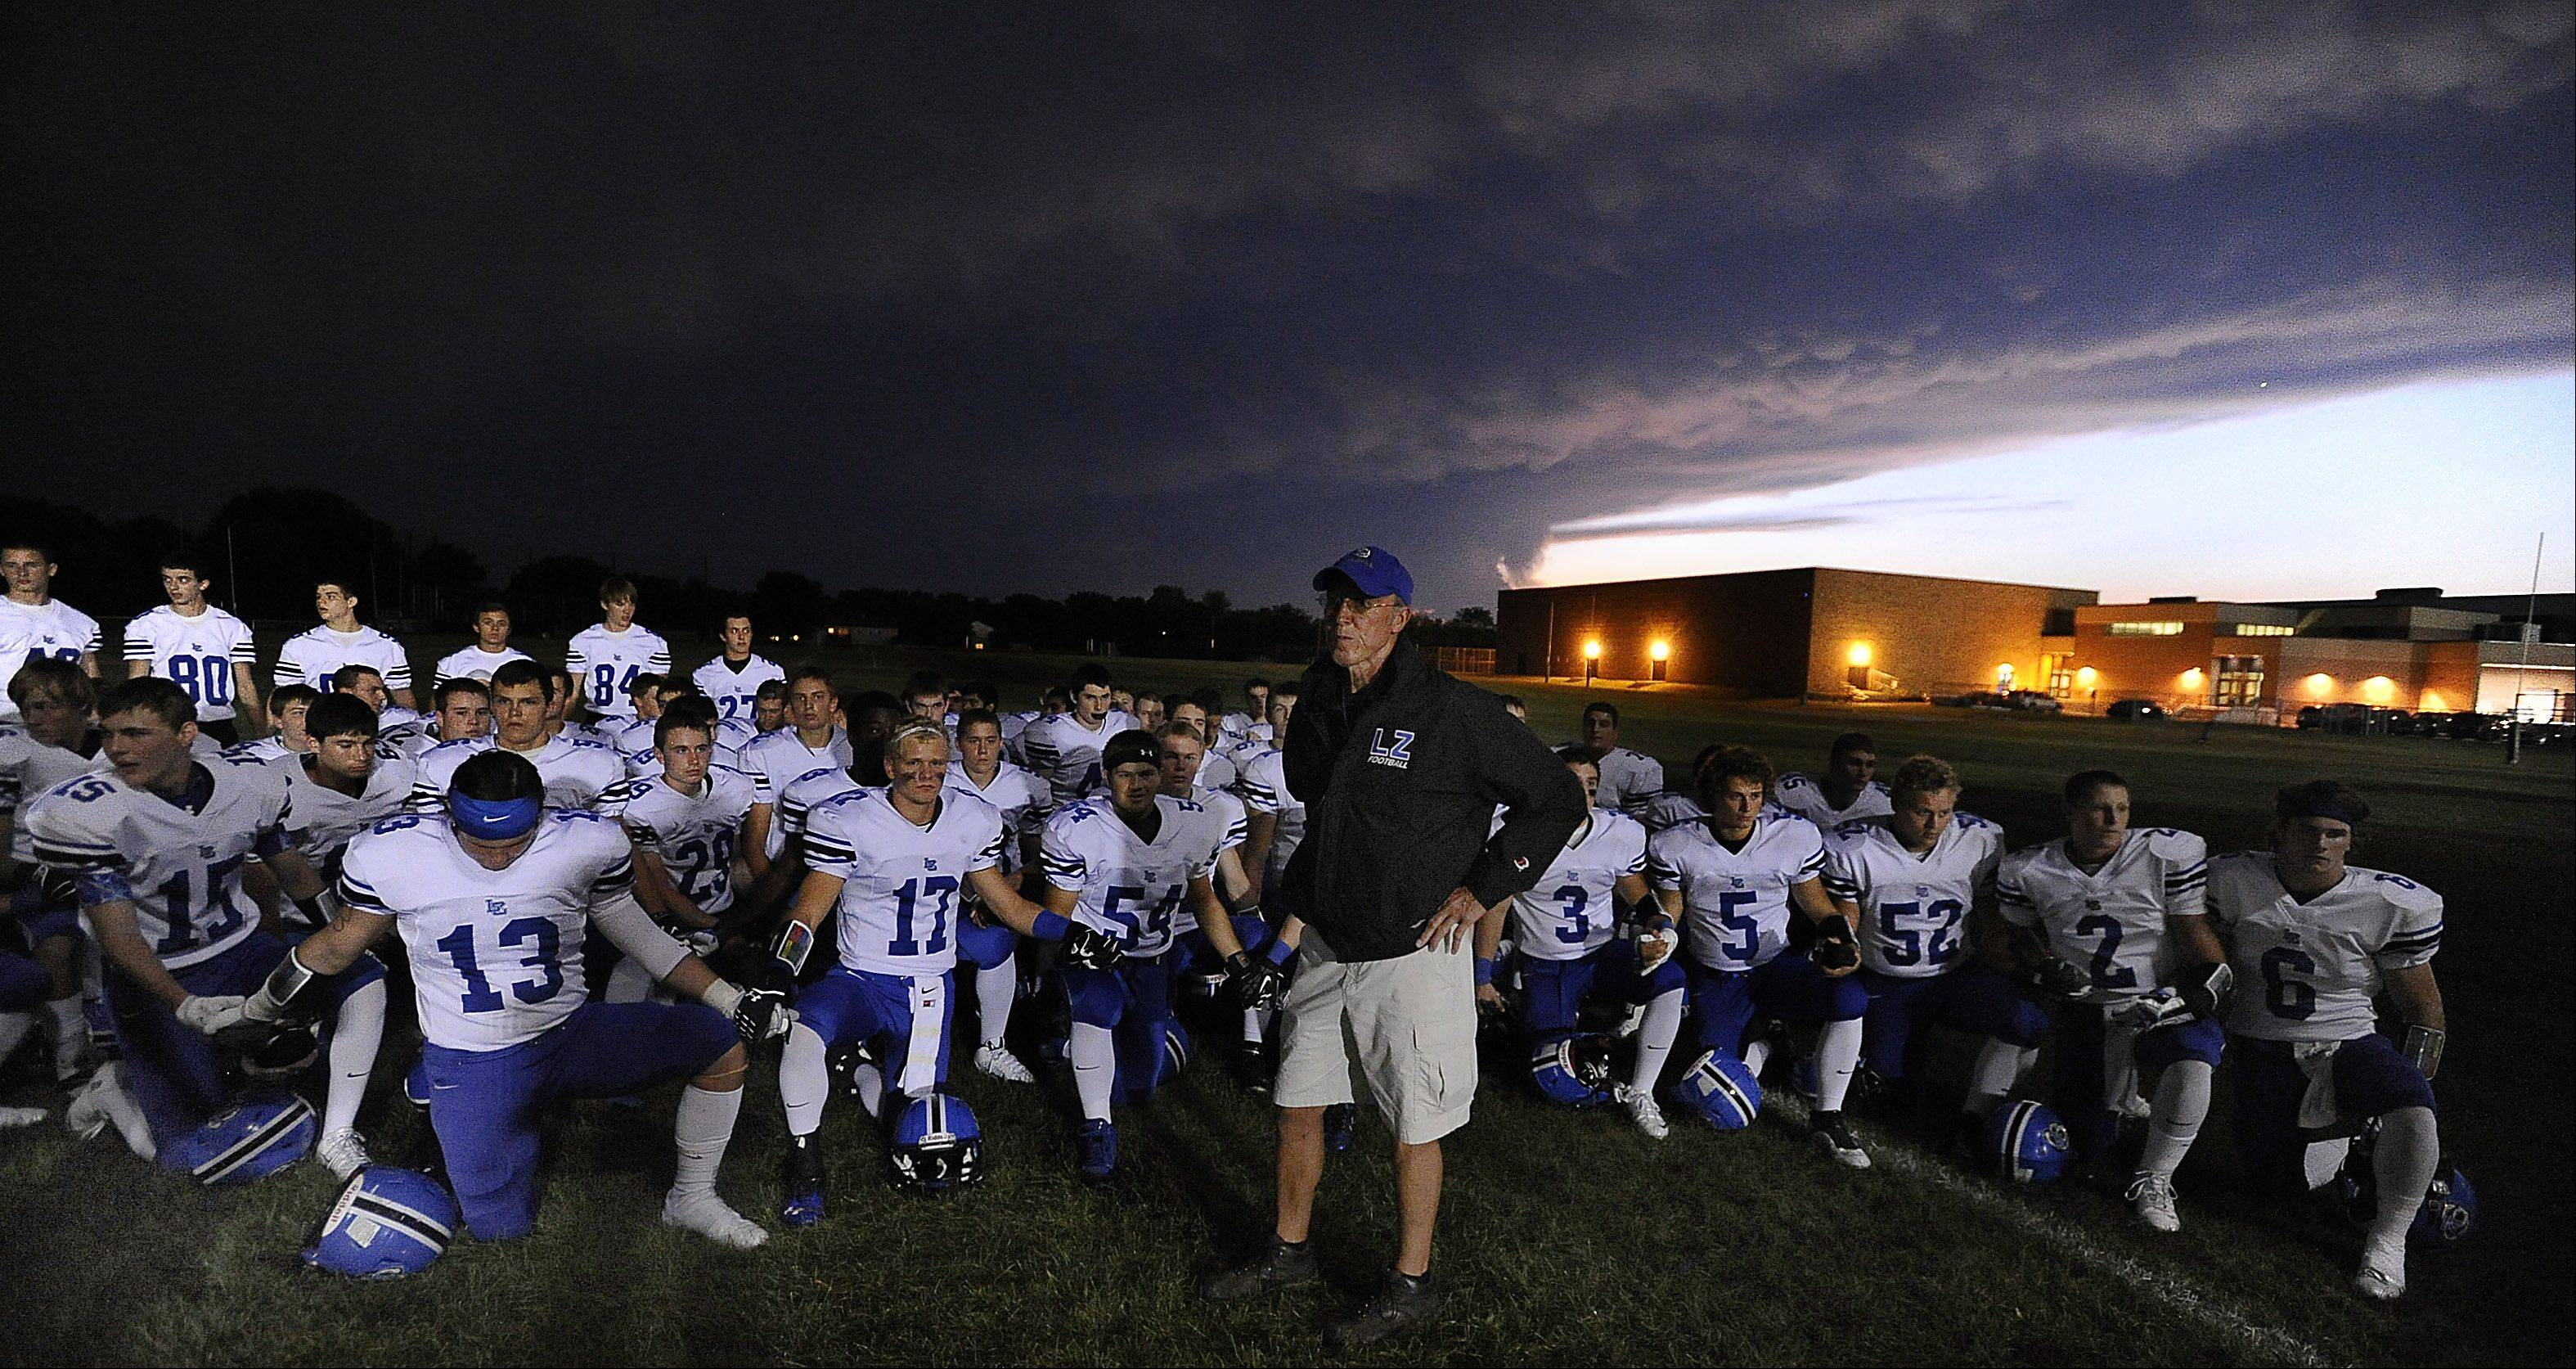 Lake Zurich's head coach Dave Proffitt stands with his players before the game as storm clouds move in on Friday in Palatine.